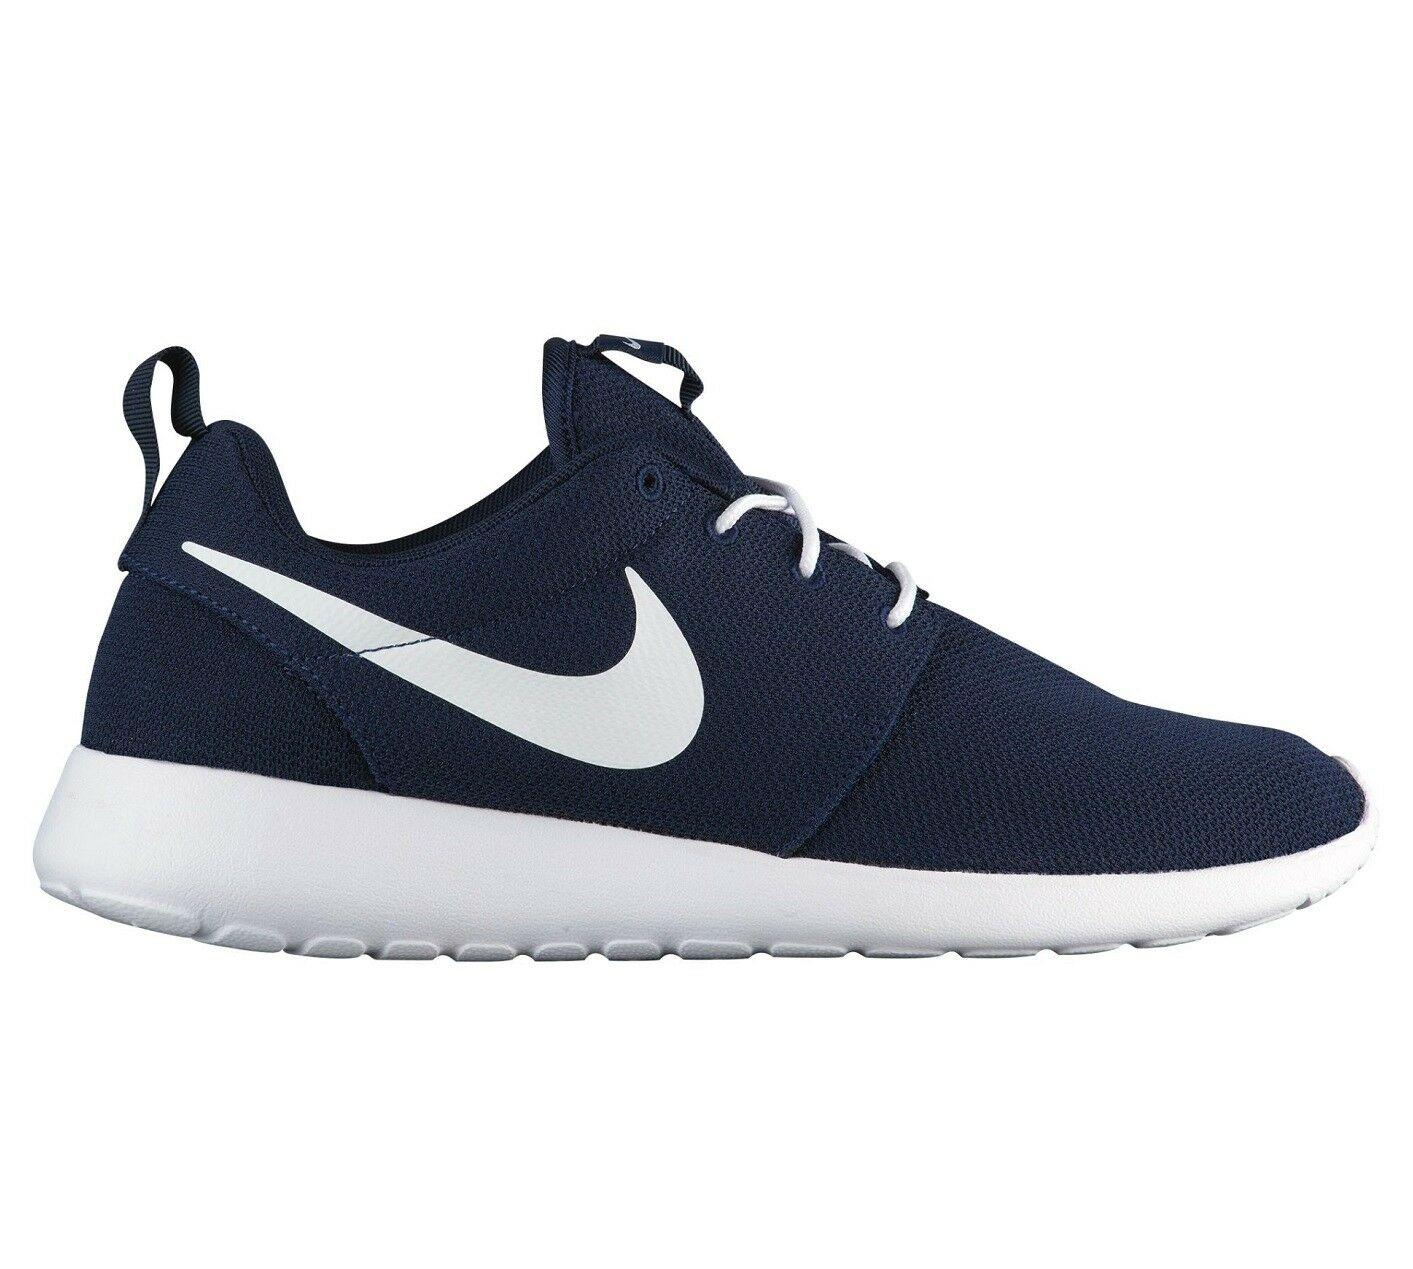 Nike Roshe One Mens 511881-423 Obsidian Blue White Mesh Running Shoes Comfortable